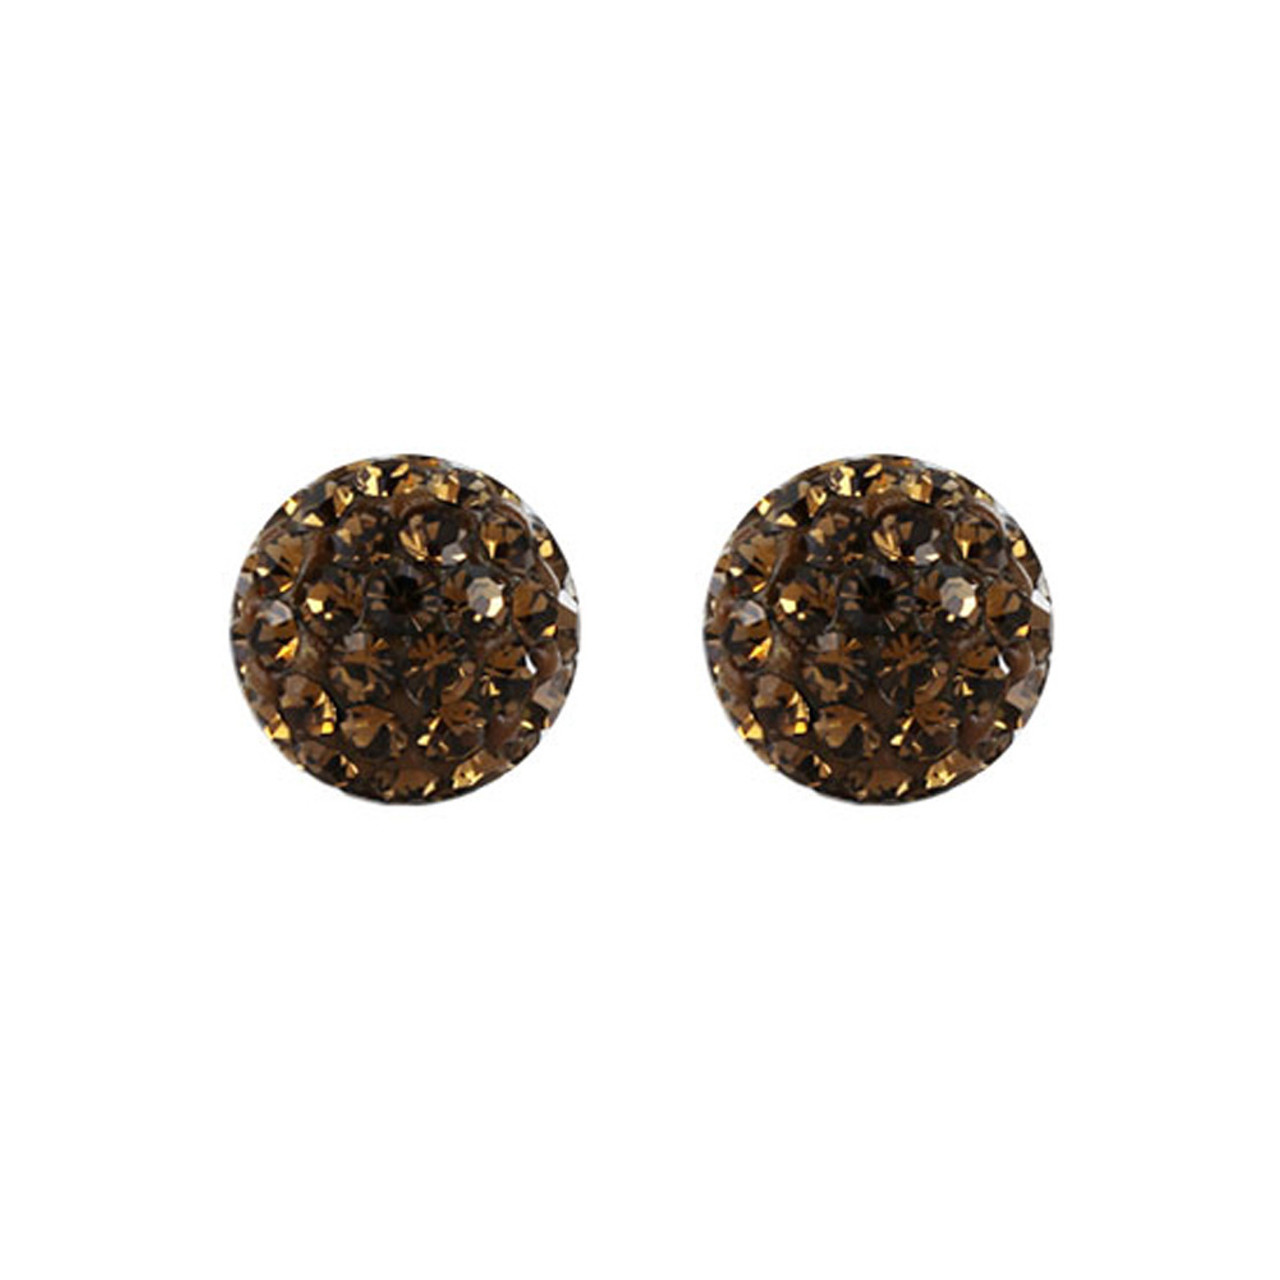 6mm Round Brown Crystal Ball Stud Earrings